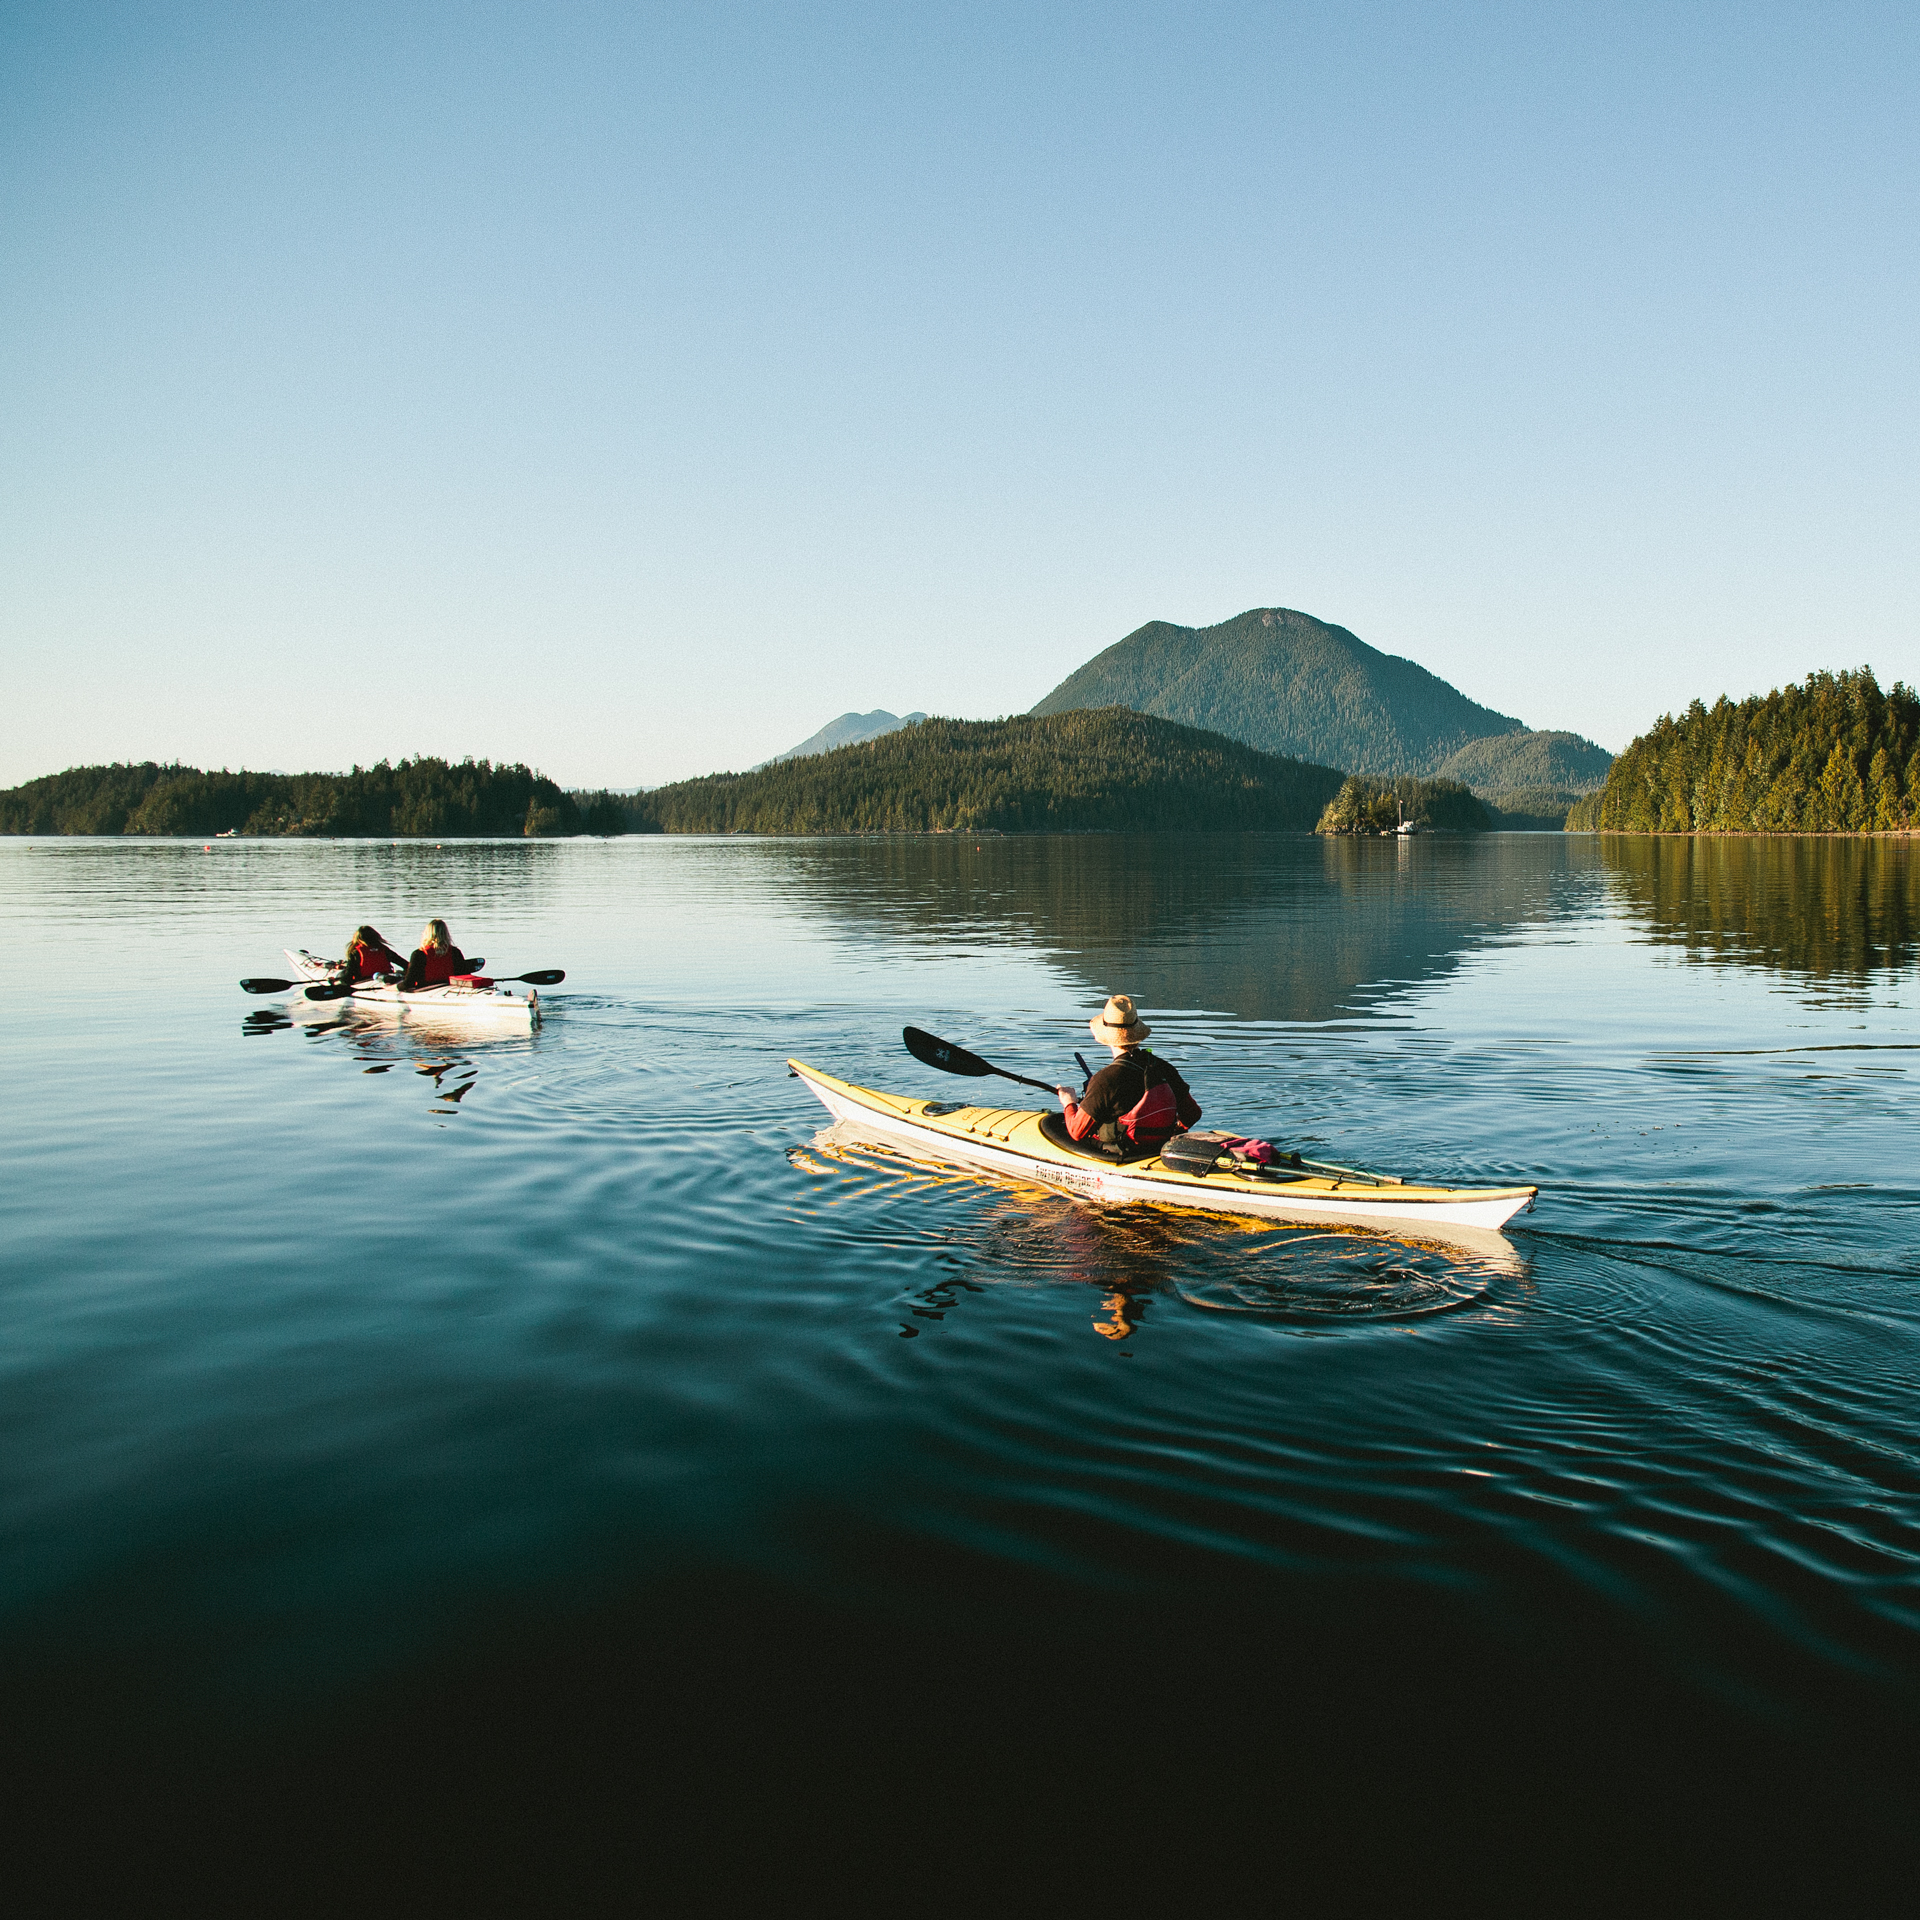 Sunset-Paddle-Tofino-Sea-Kayaking-Tofino-Harbour-Jeremy-Koreski.jpg